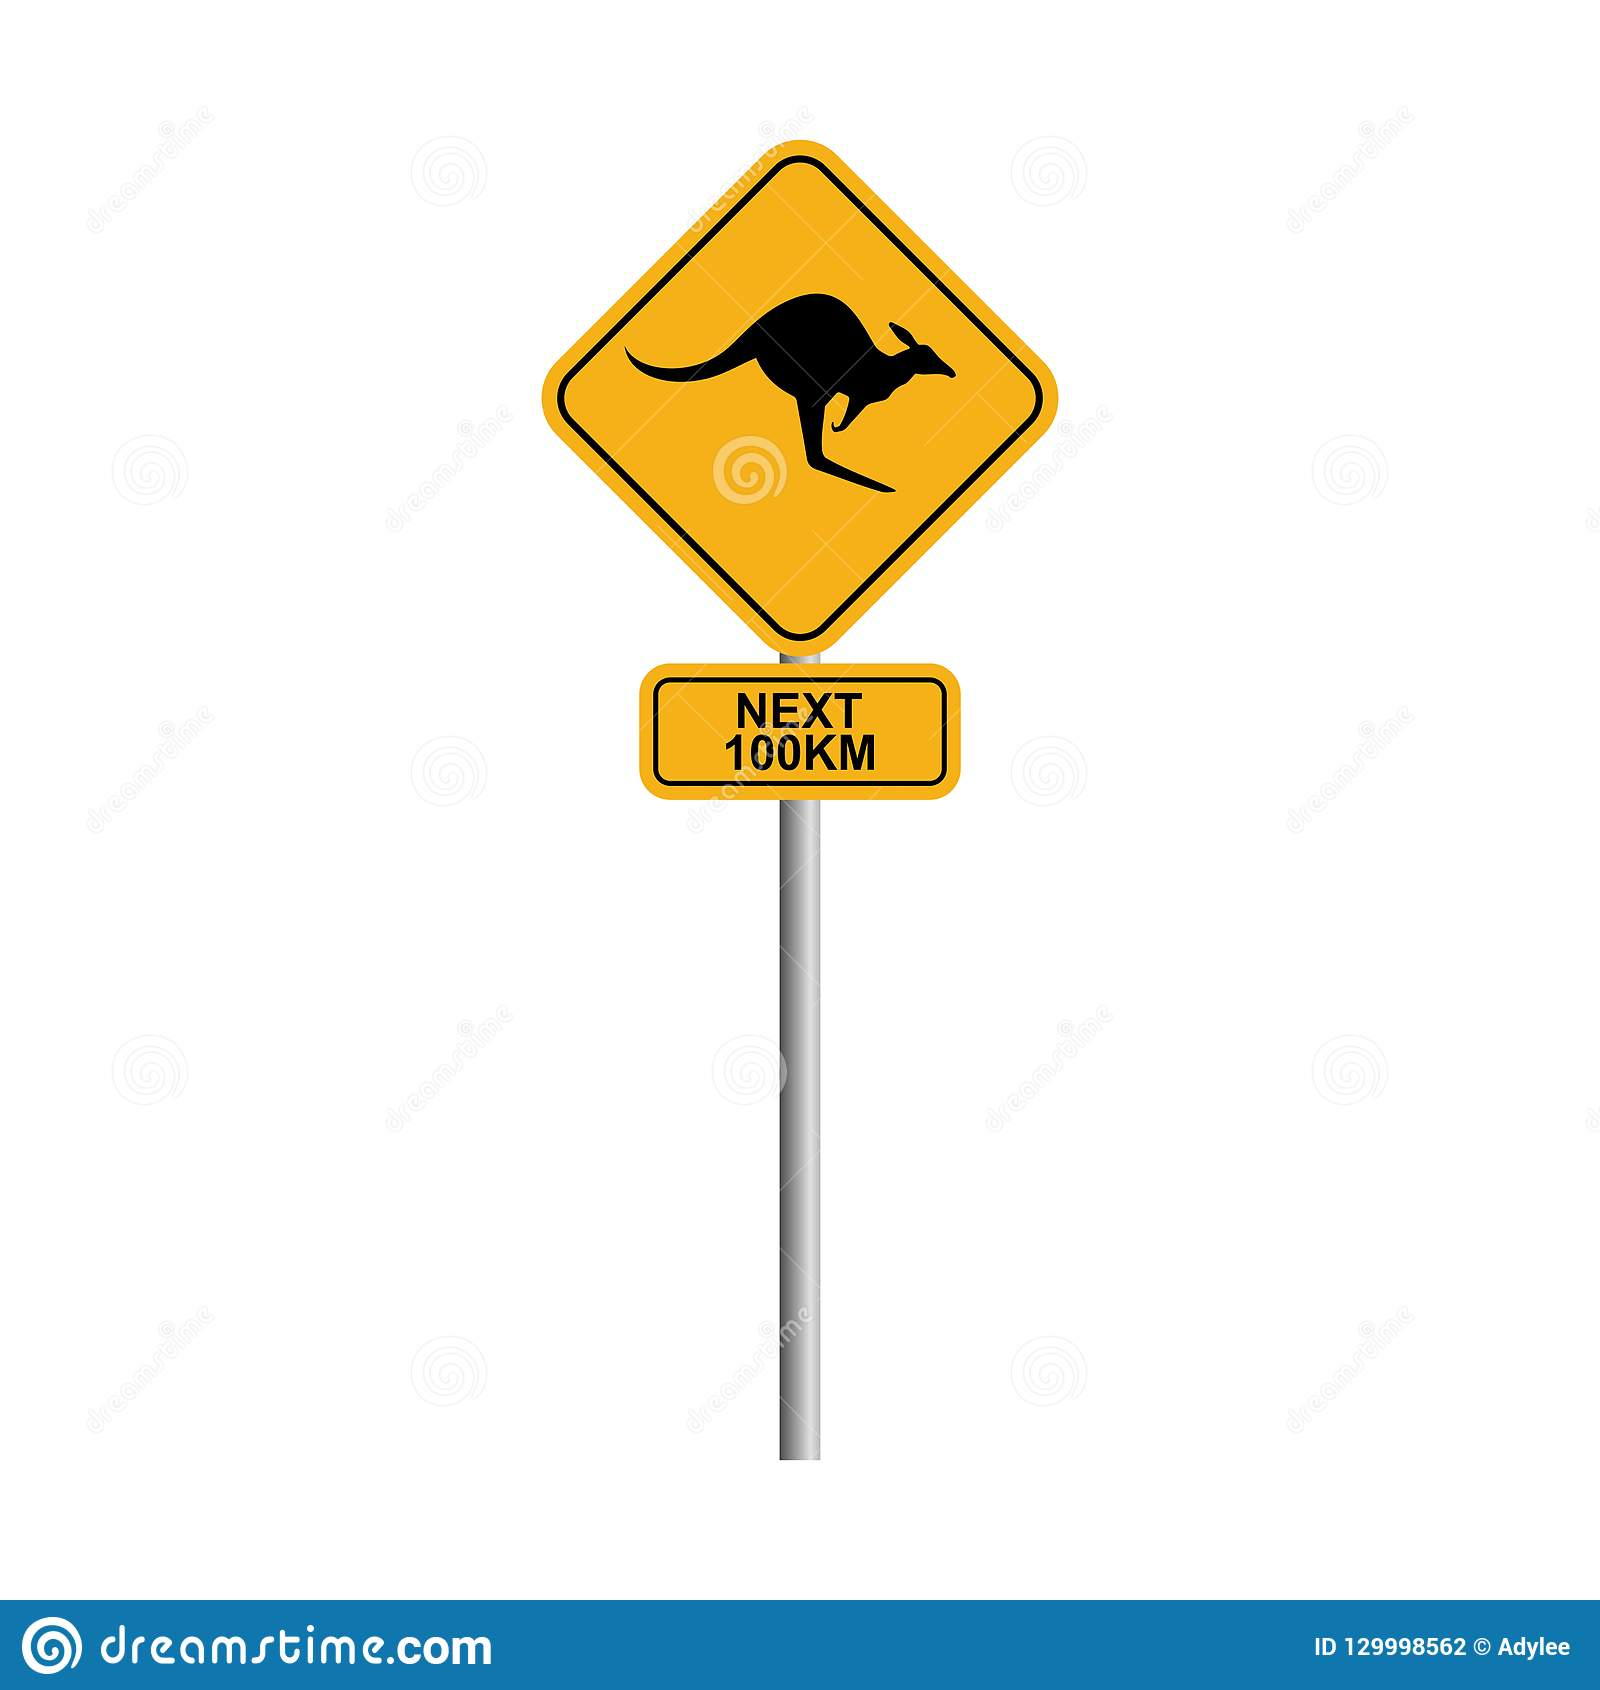 Kangaroo road sign with blue sky and cloud background 2